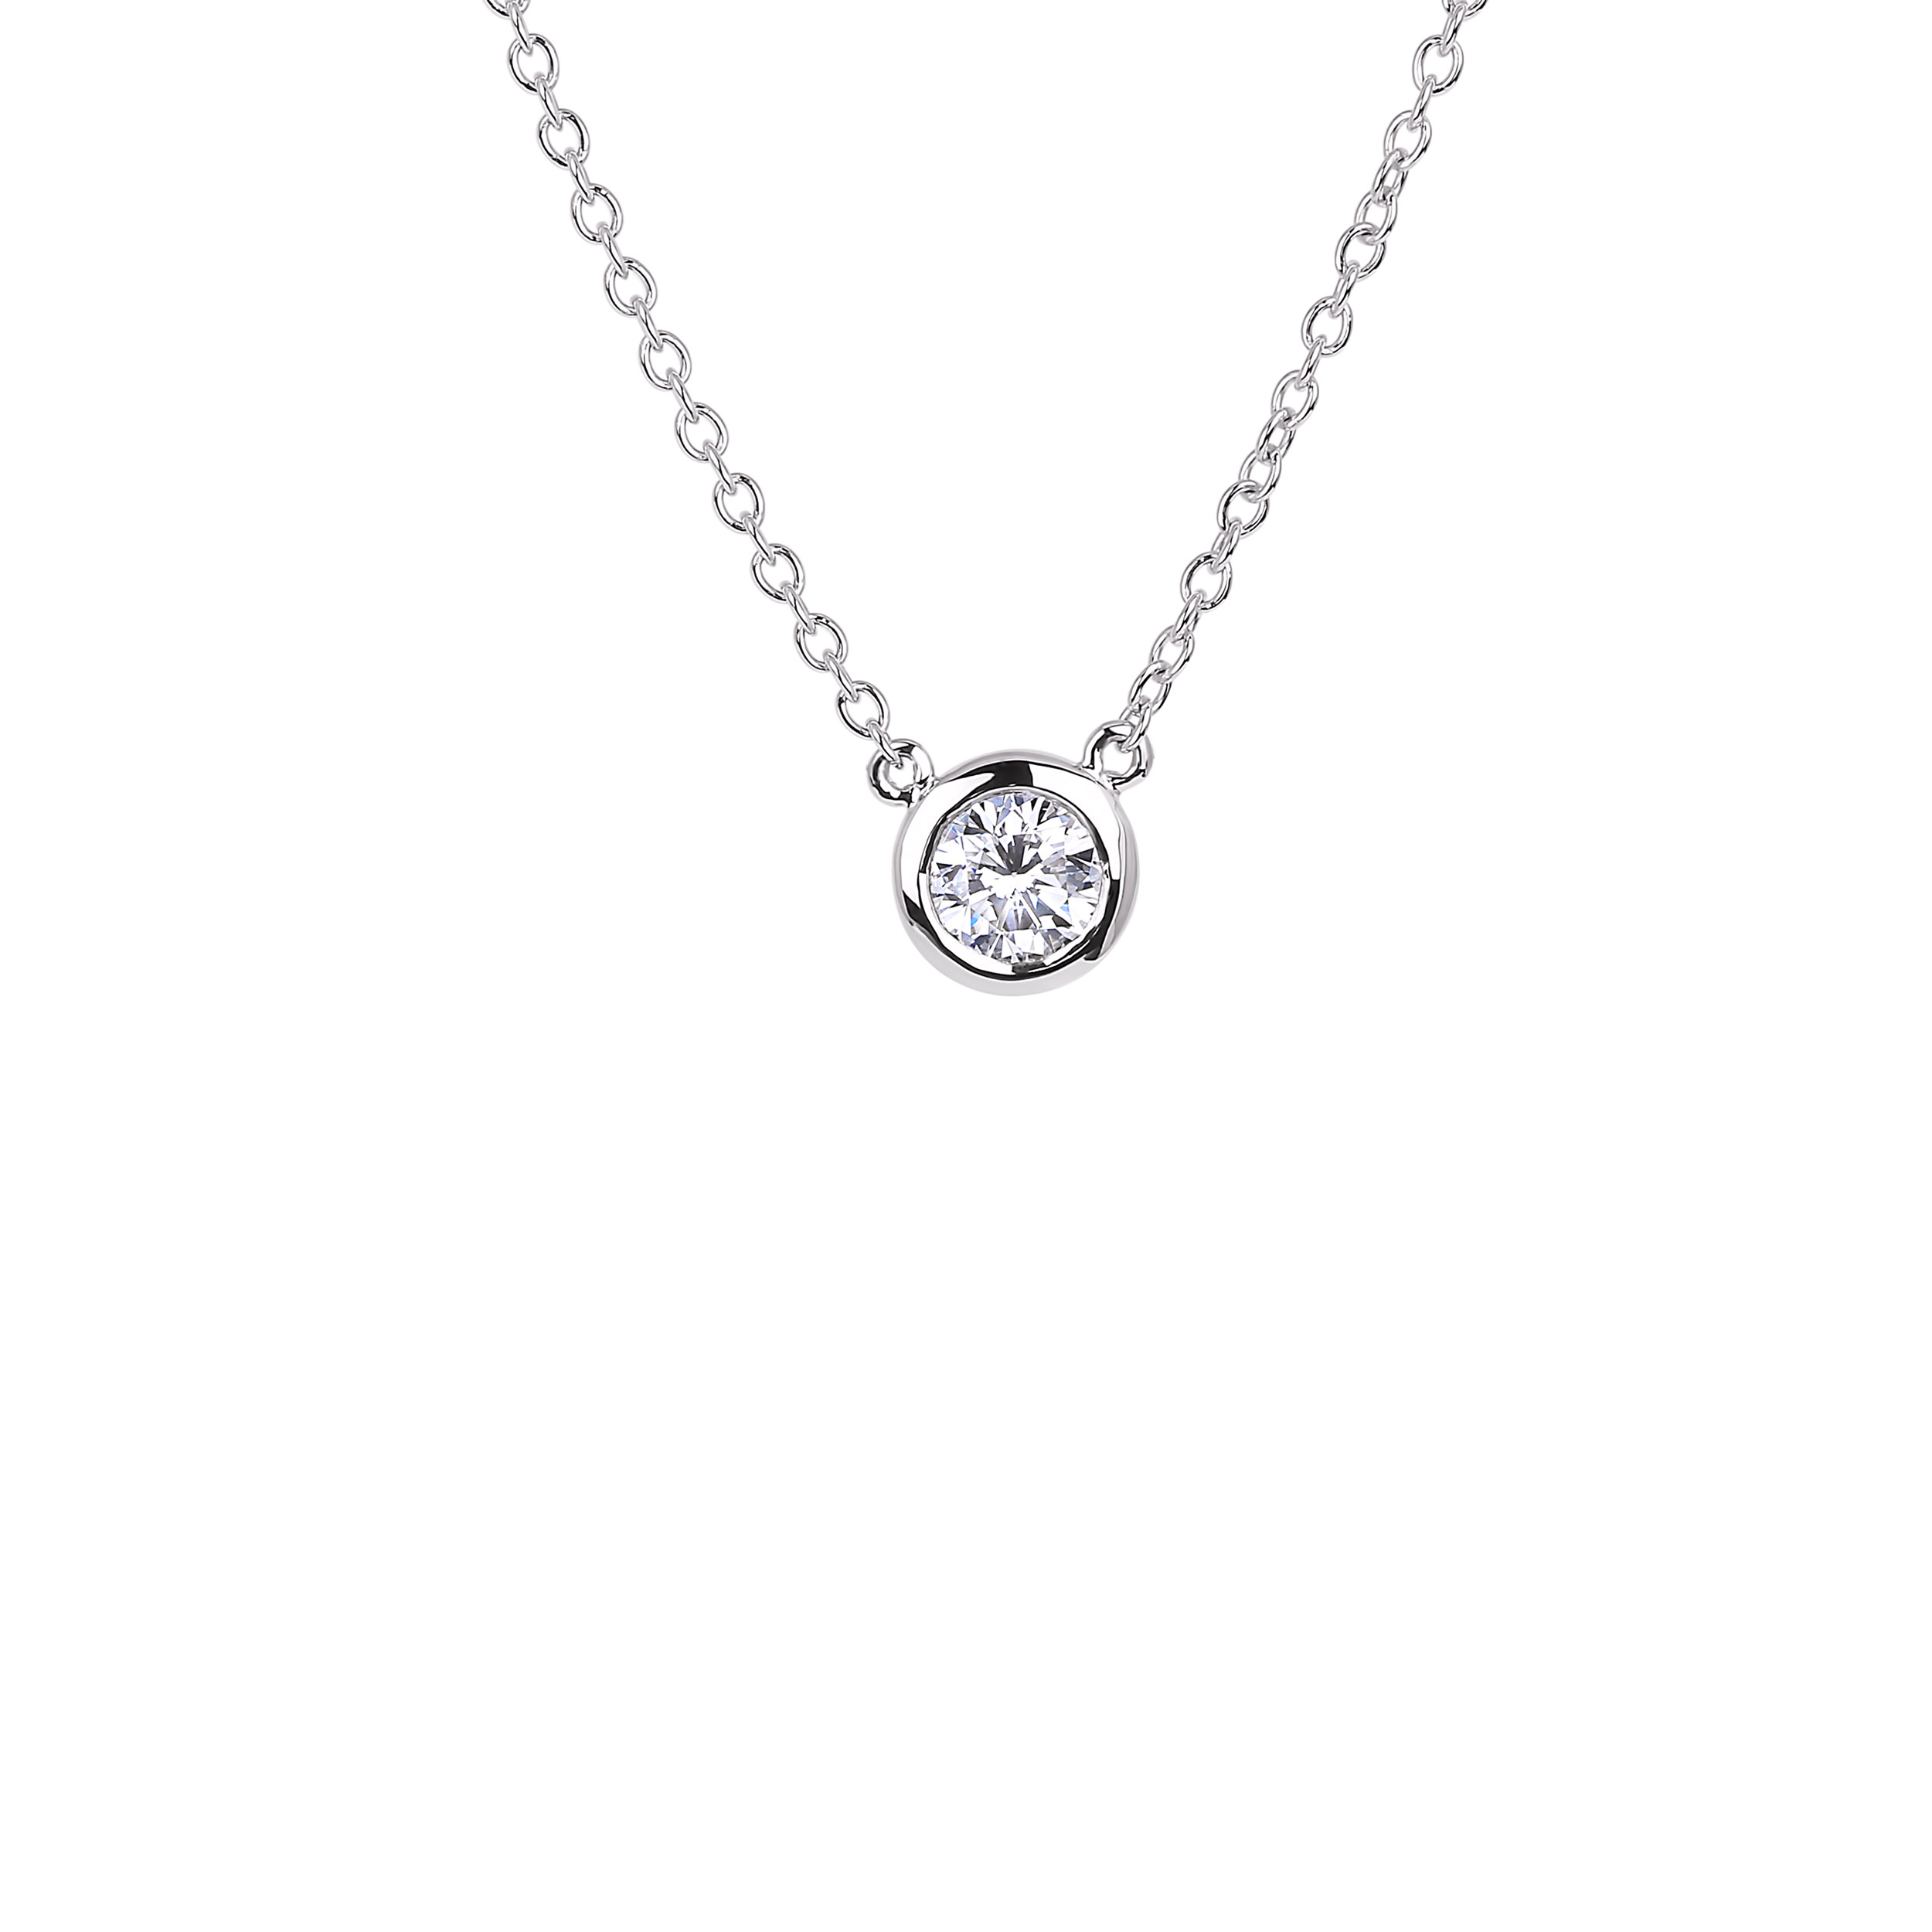 Diamond Solitaire Pendants SGP245 (Pendants)